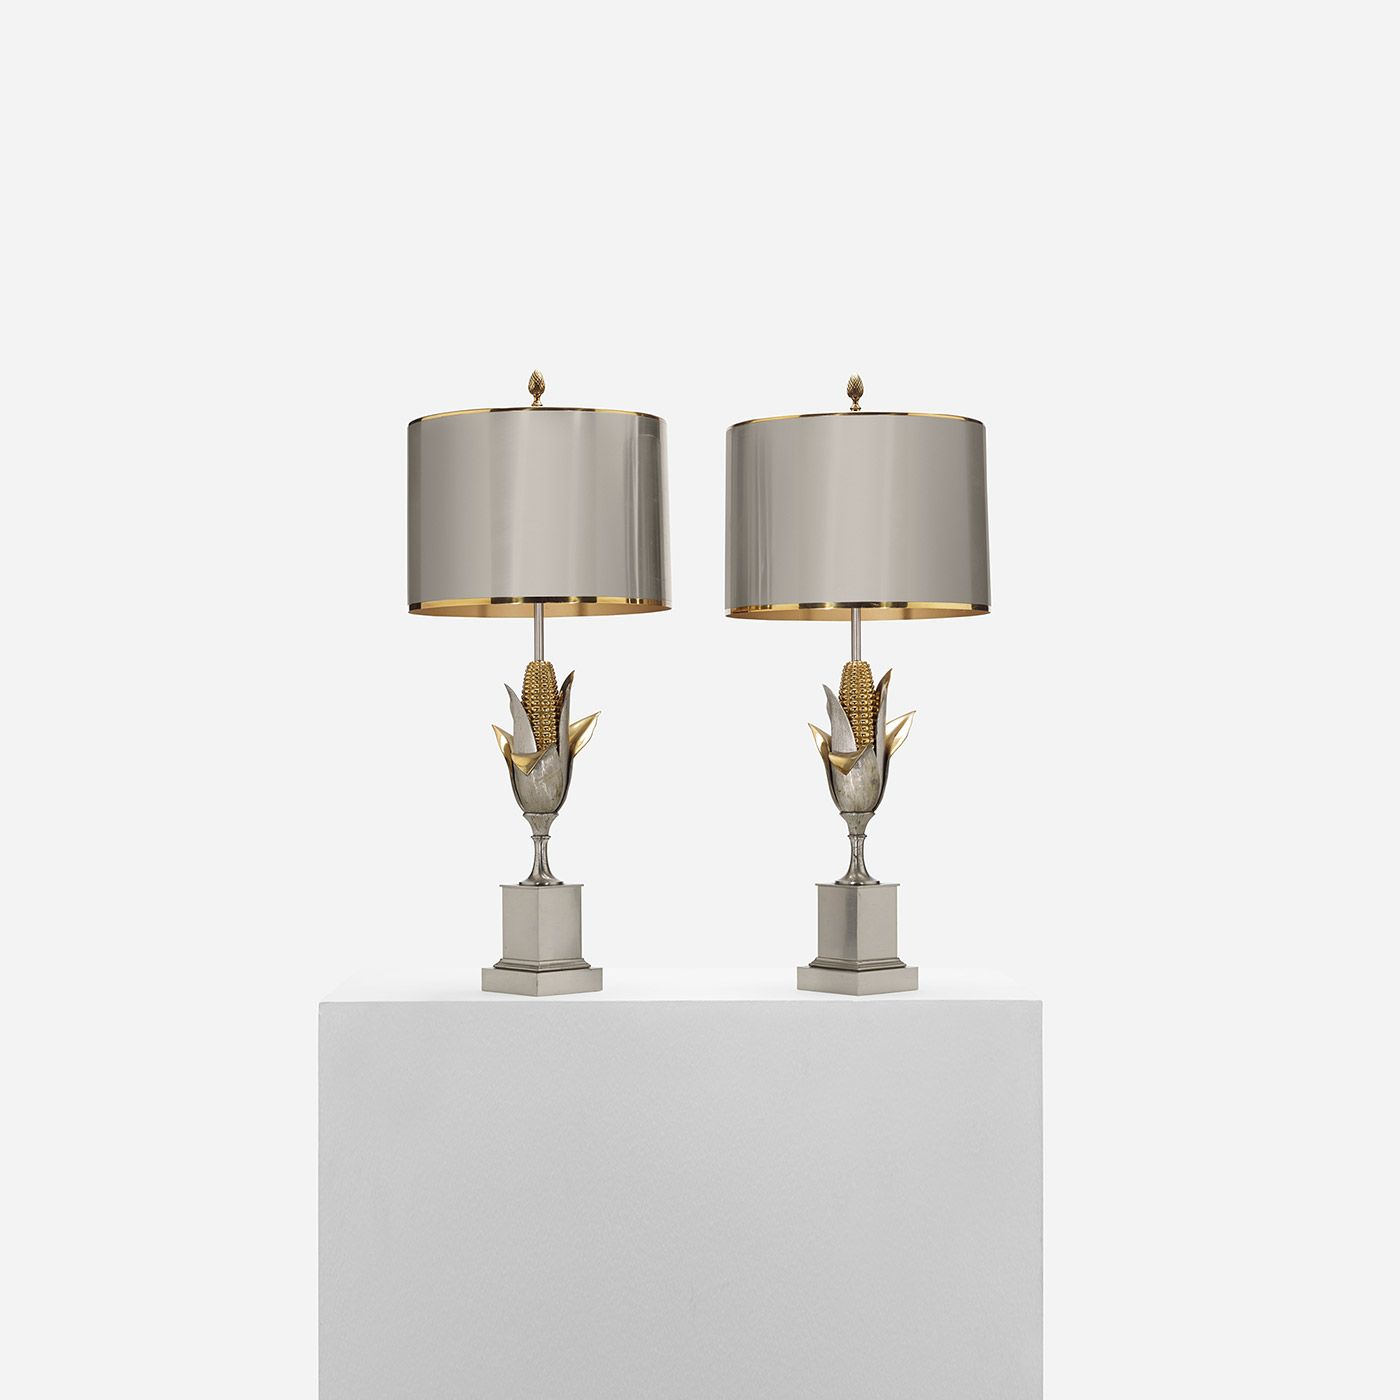 Prime 259 Maison Charles Table Lamps Pair Living Download Free Architecture Designs Ferenbritishbridgeorg